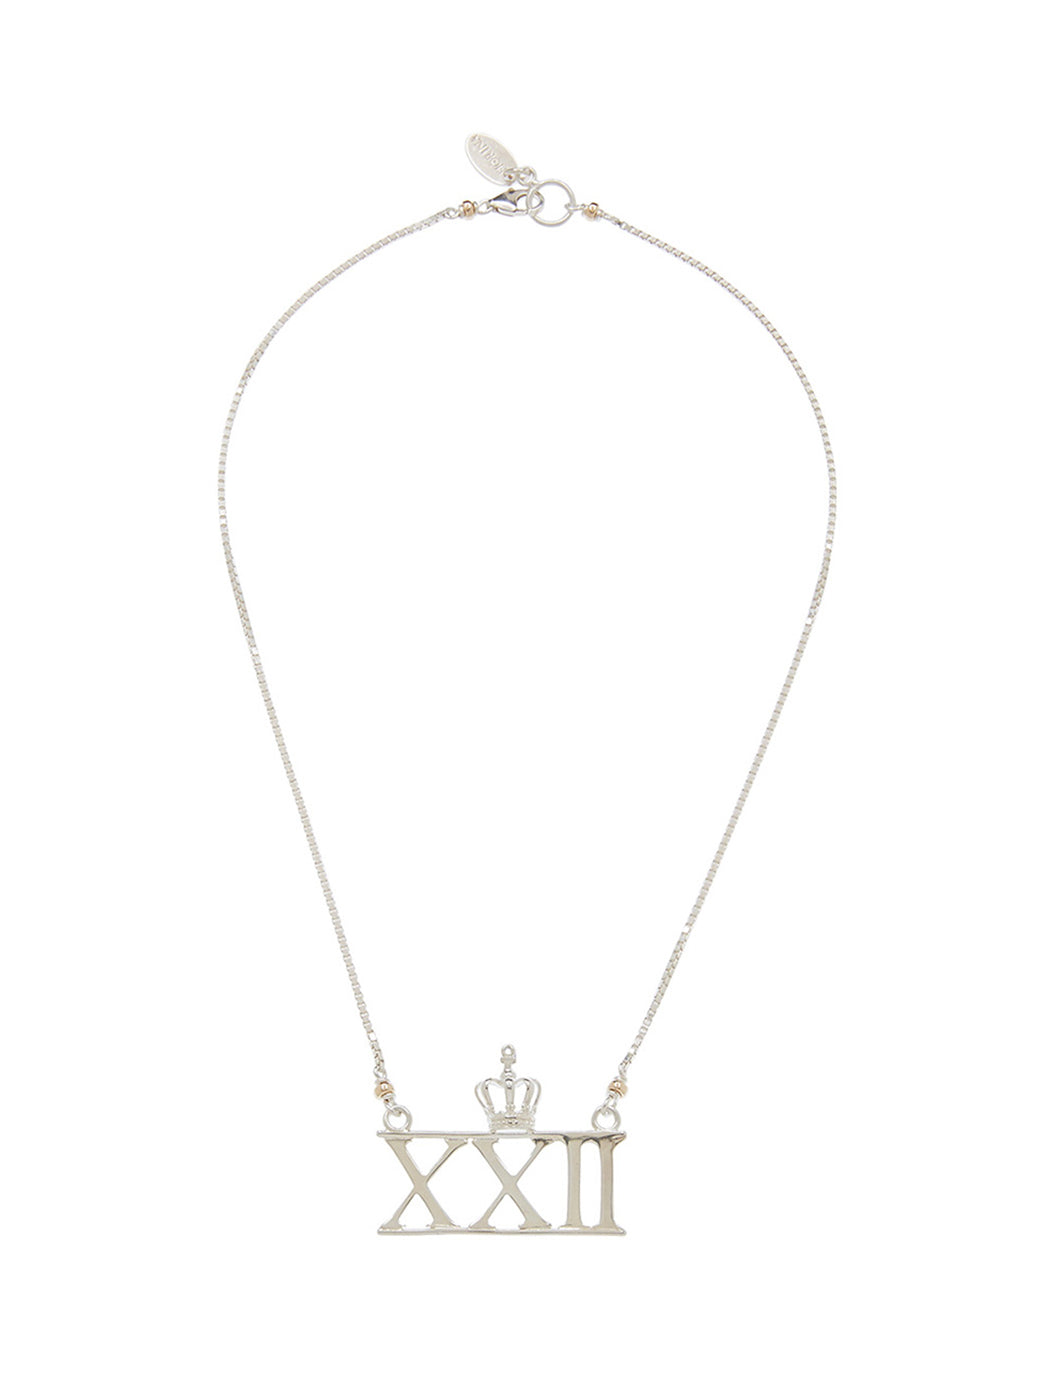 Fiorina Jewellery Time of Day Necklace